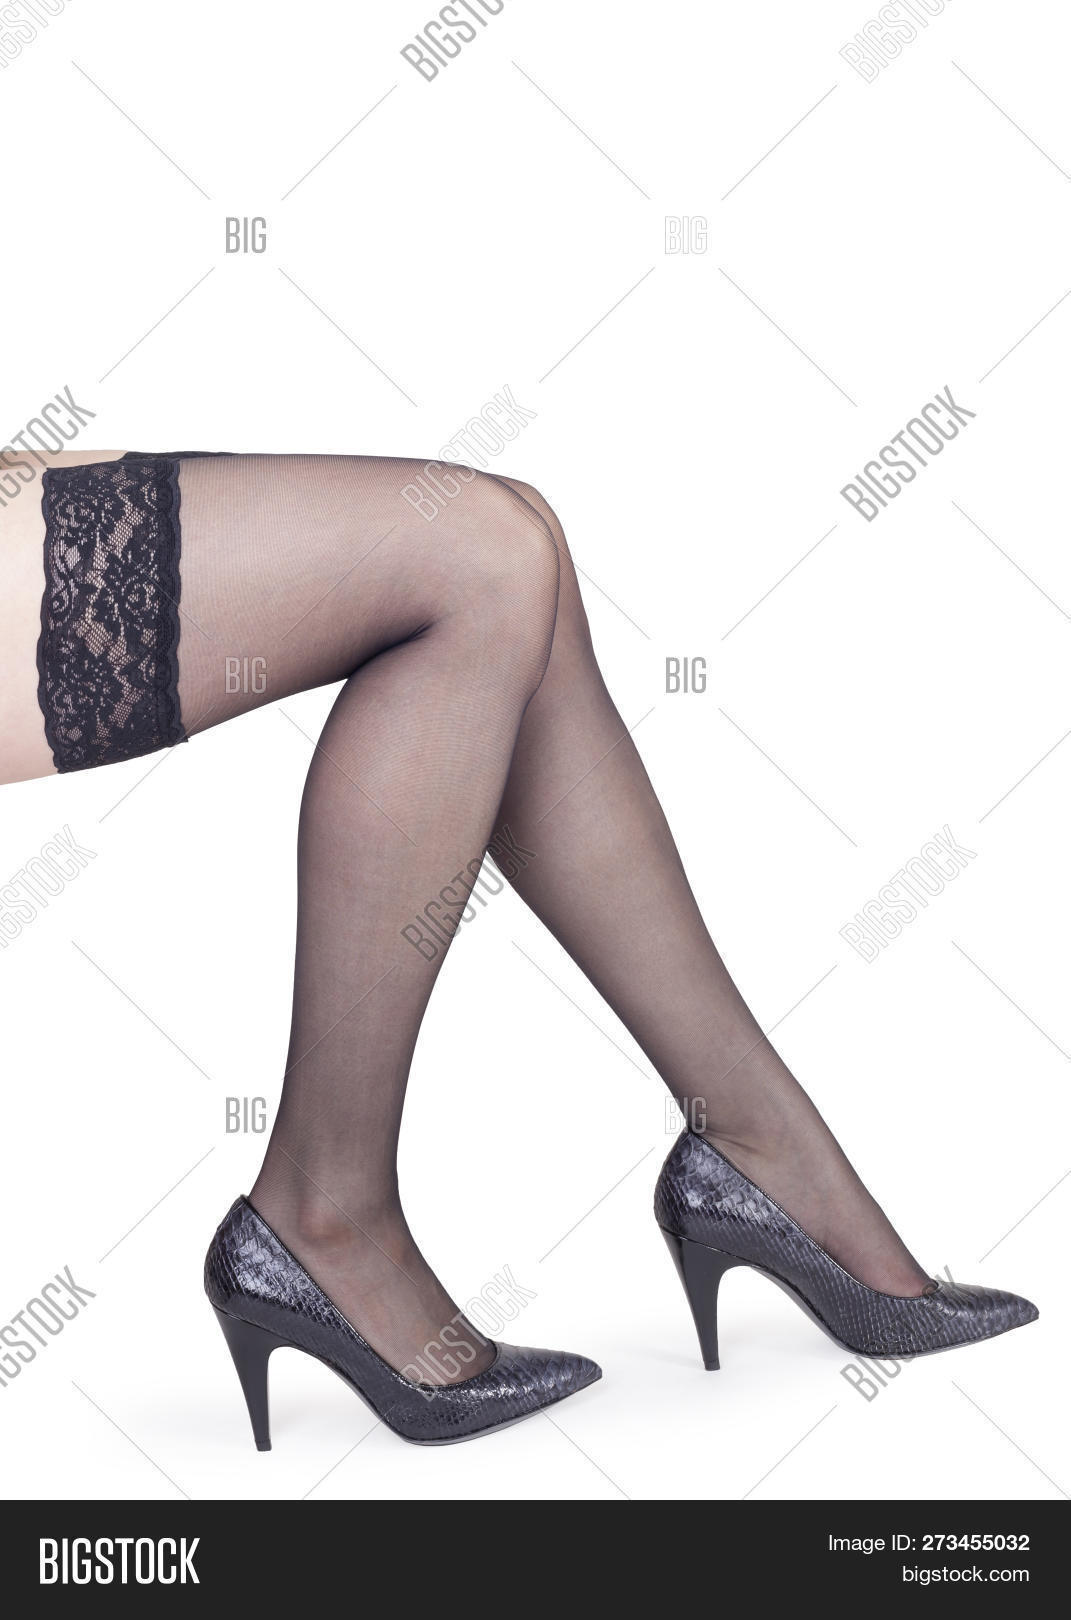 2f5e31e131a Perfect Long Female Legs In Black Nylon Stockings And Heel Shoes Isolated  On White Background -